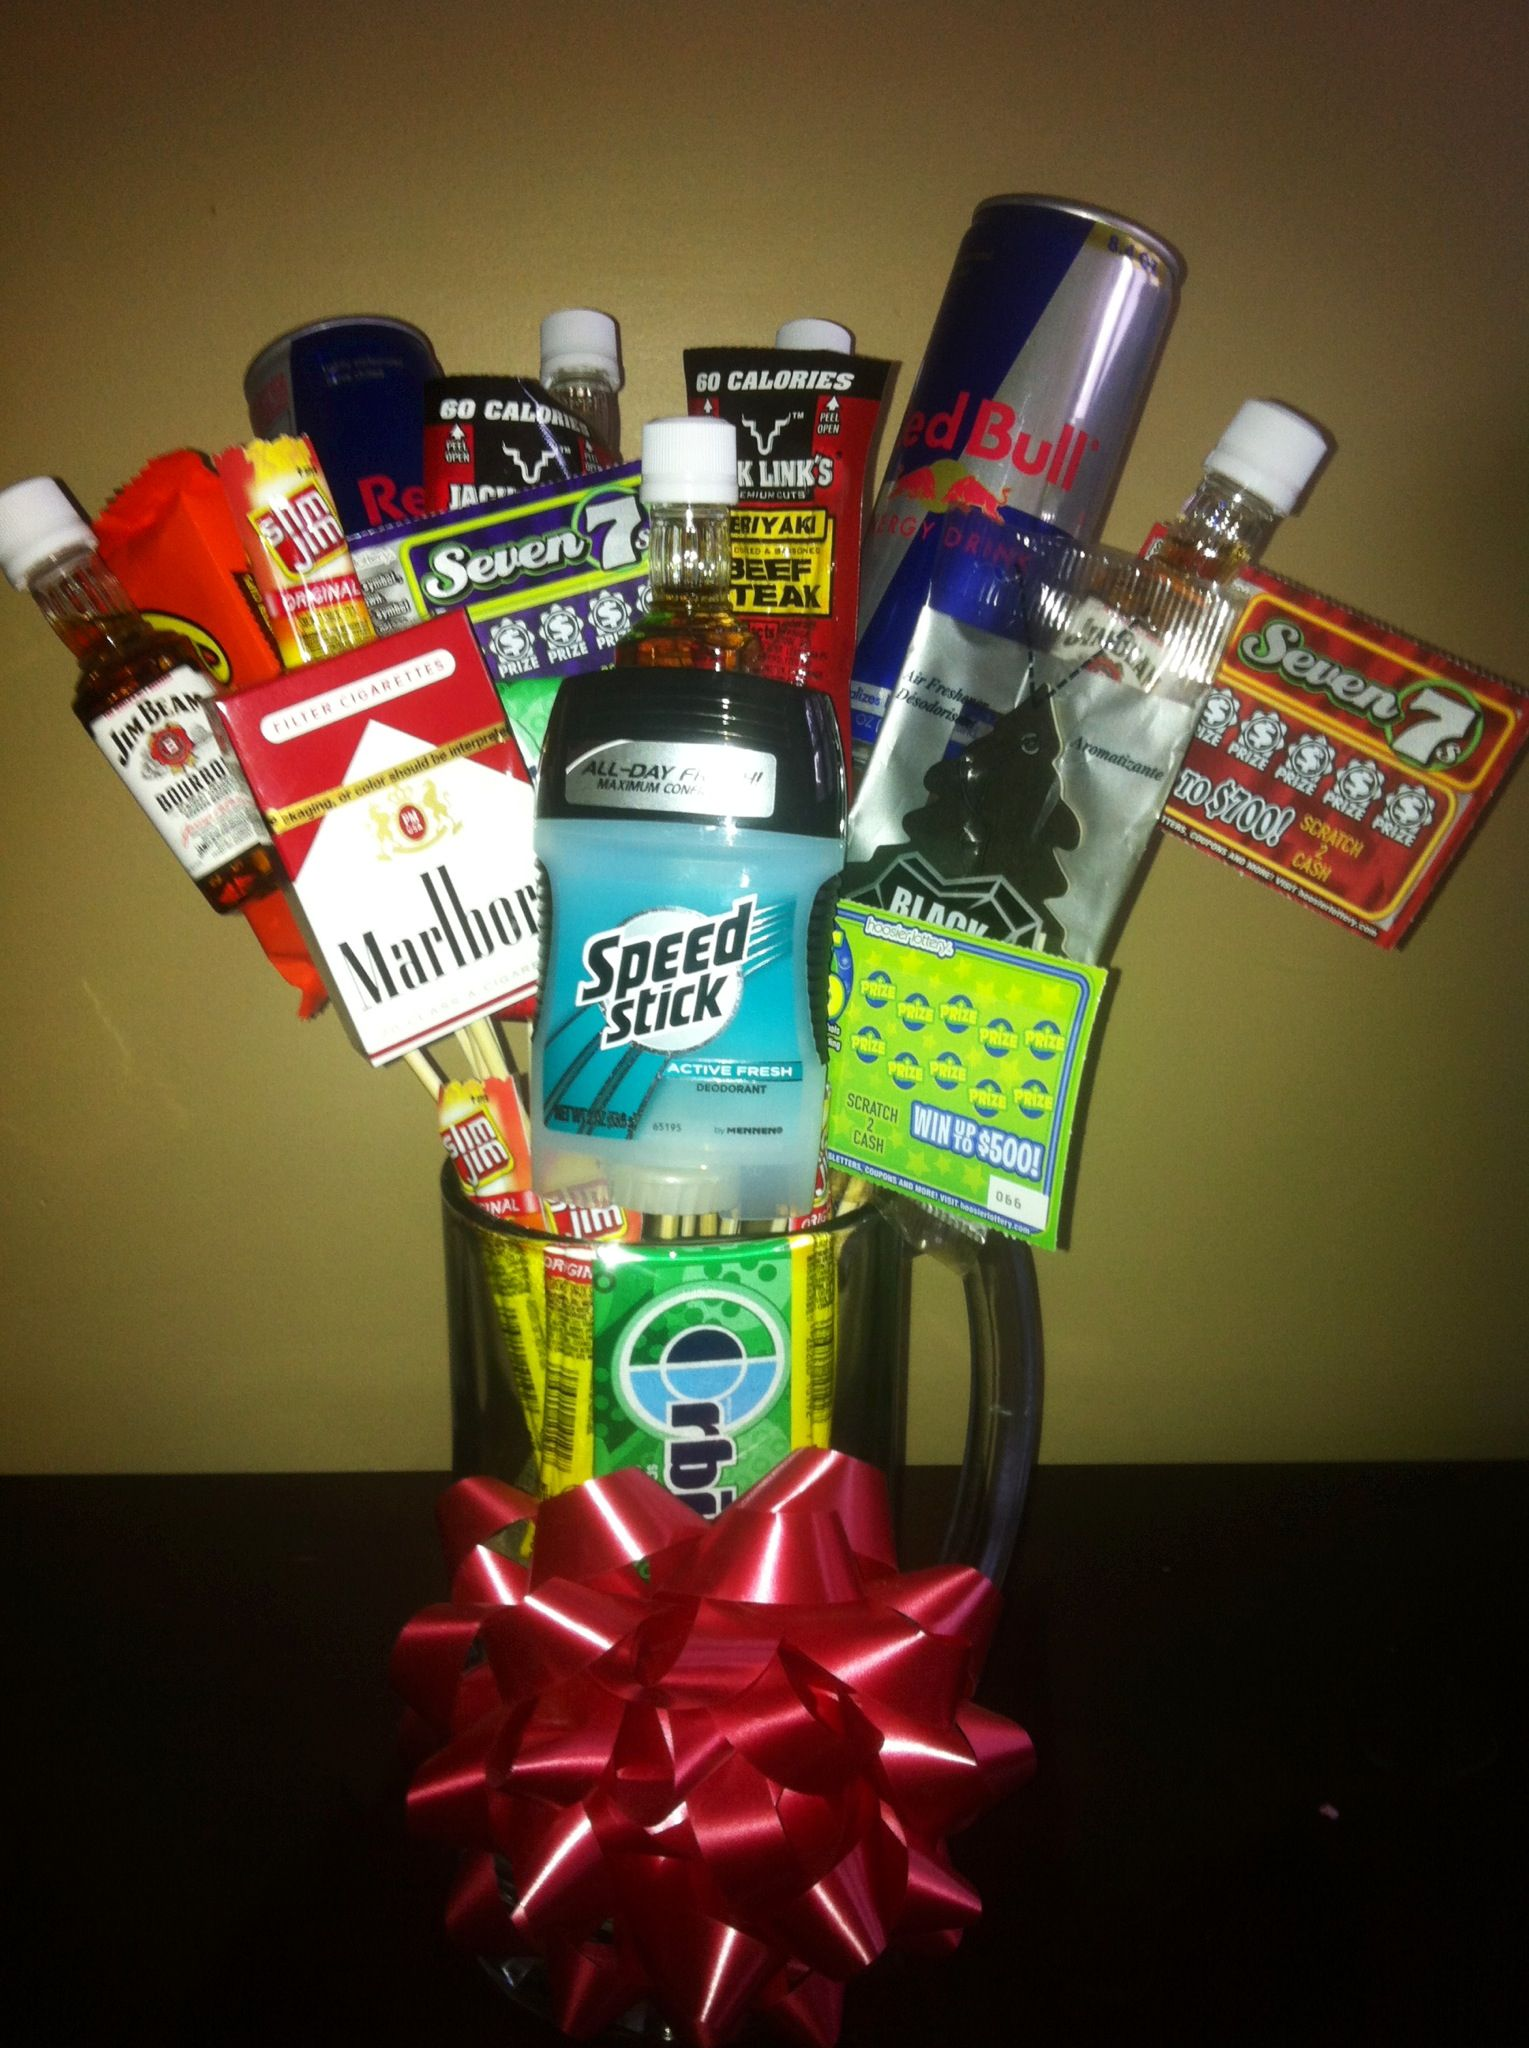 Guy gift, minus the cigarettes(gross)! And the alcohol